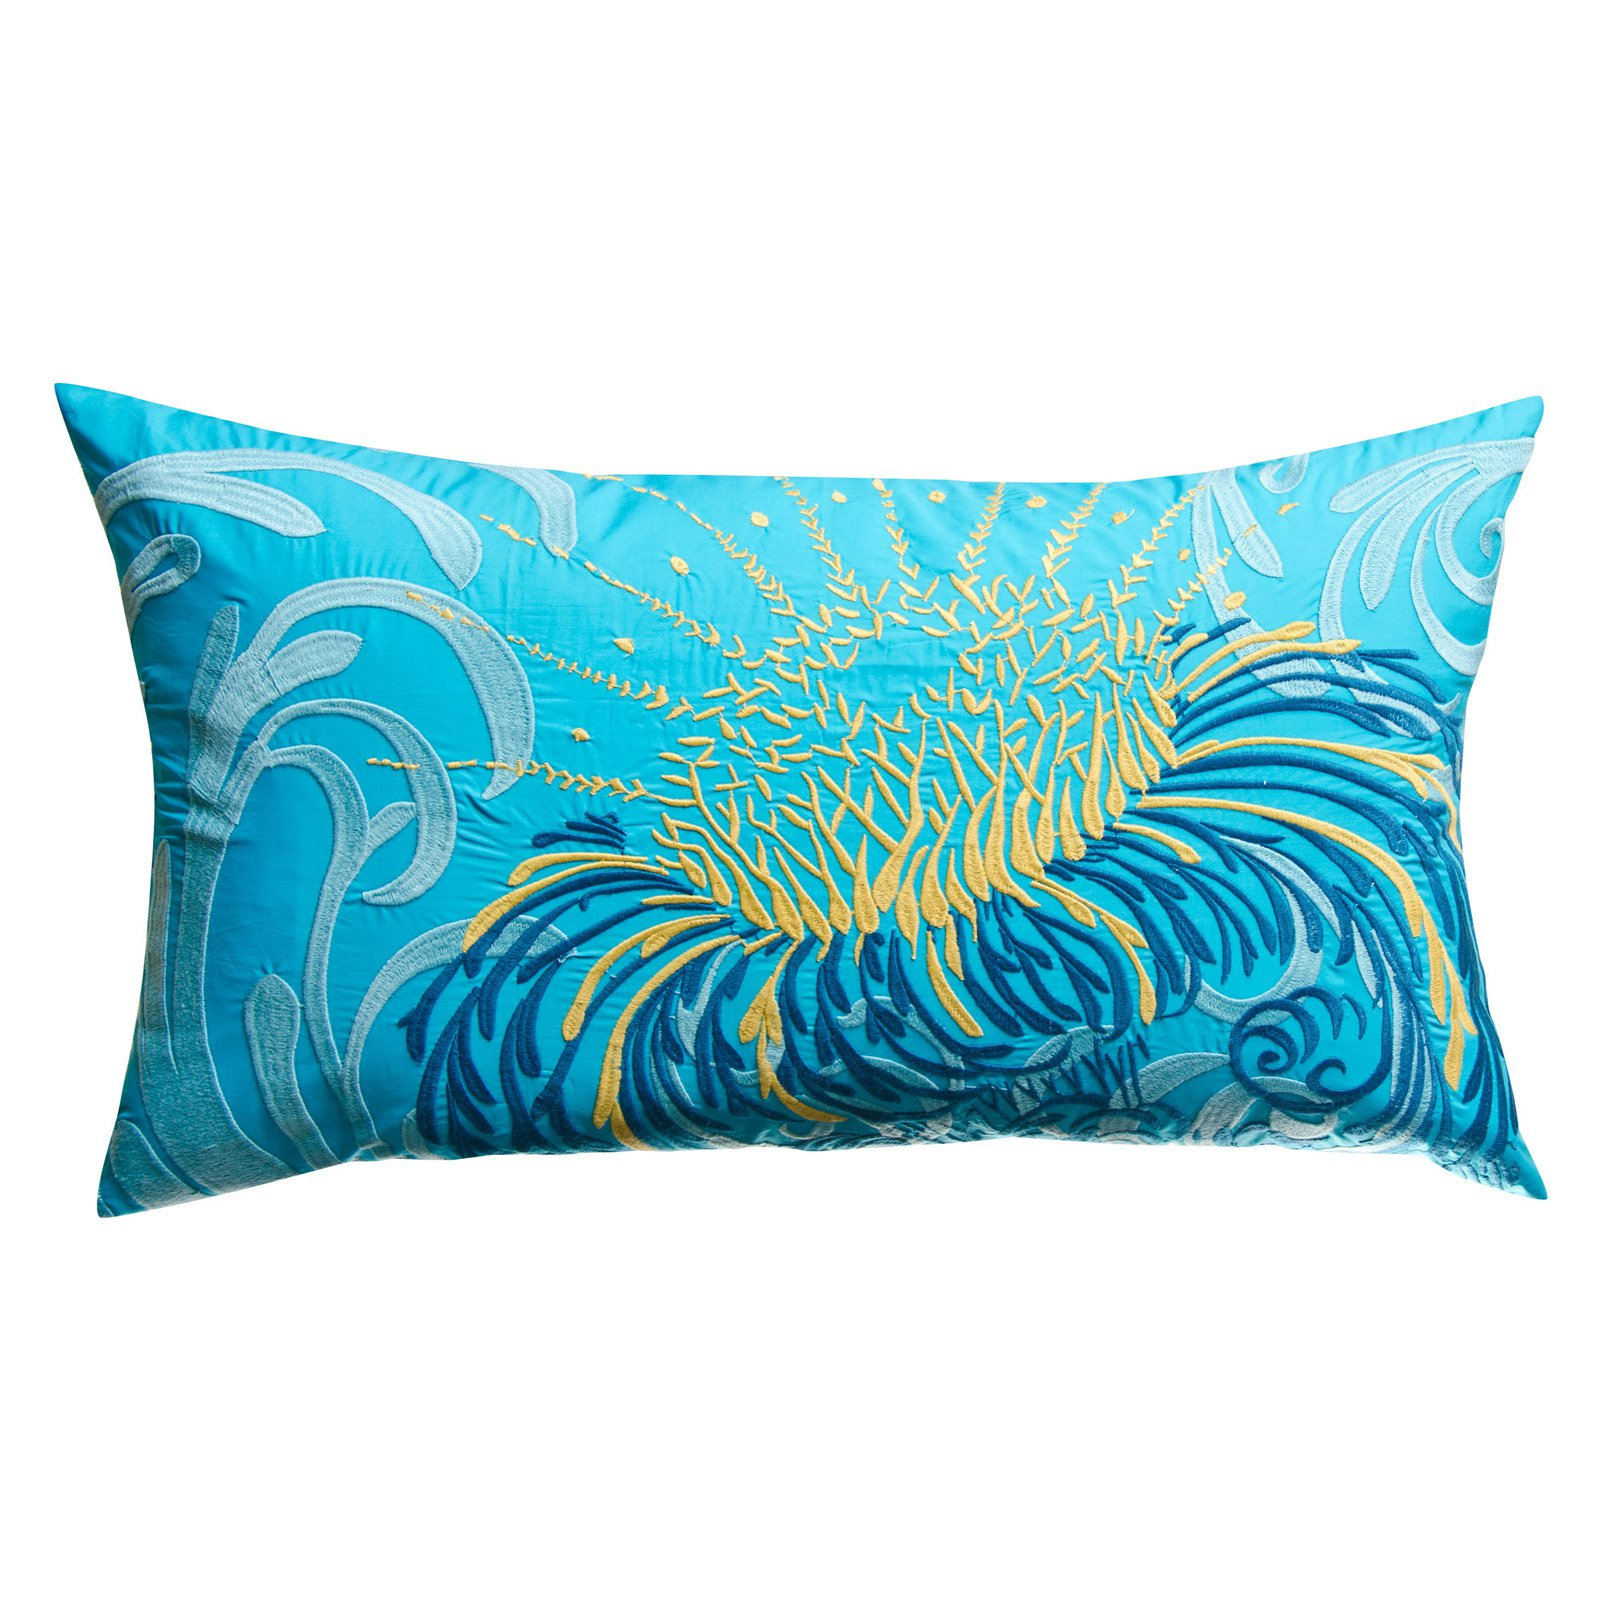 Koko Company 27 in. Water Oblong Pillow